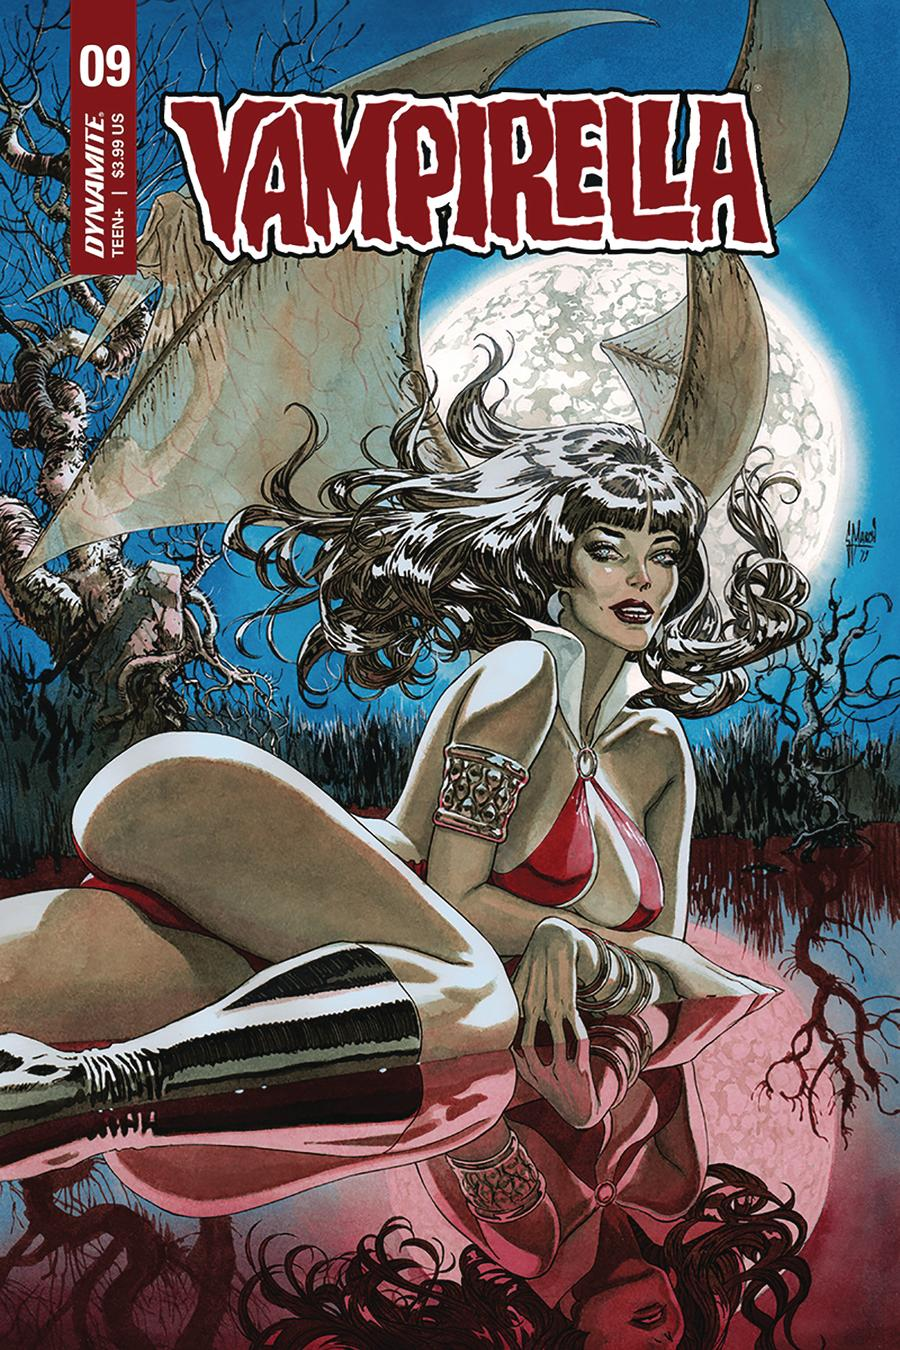 Vampirella Vol 8 #9 Cover B Variant Guillem March Cover